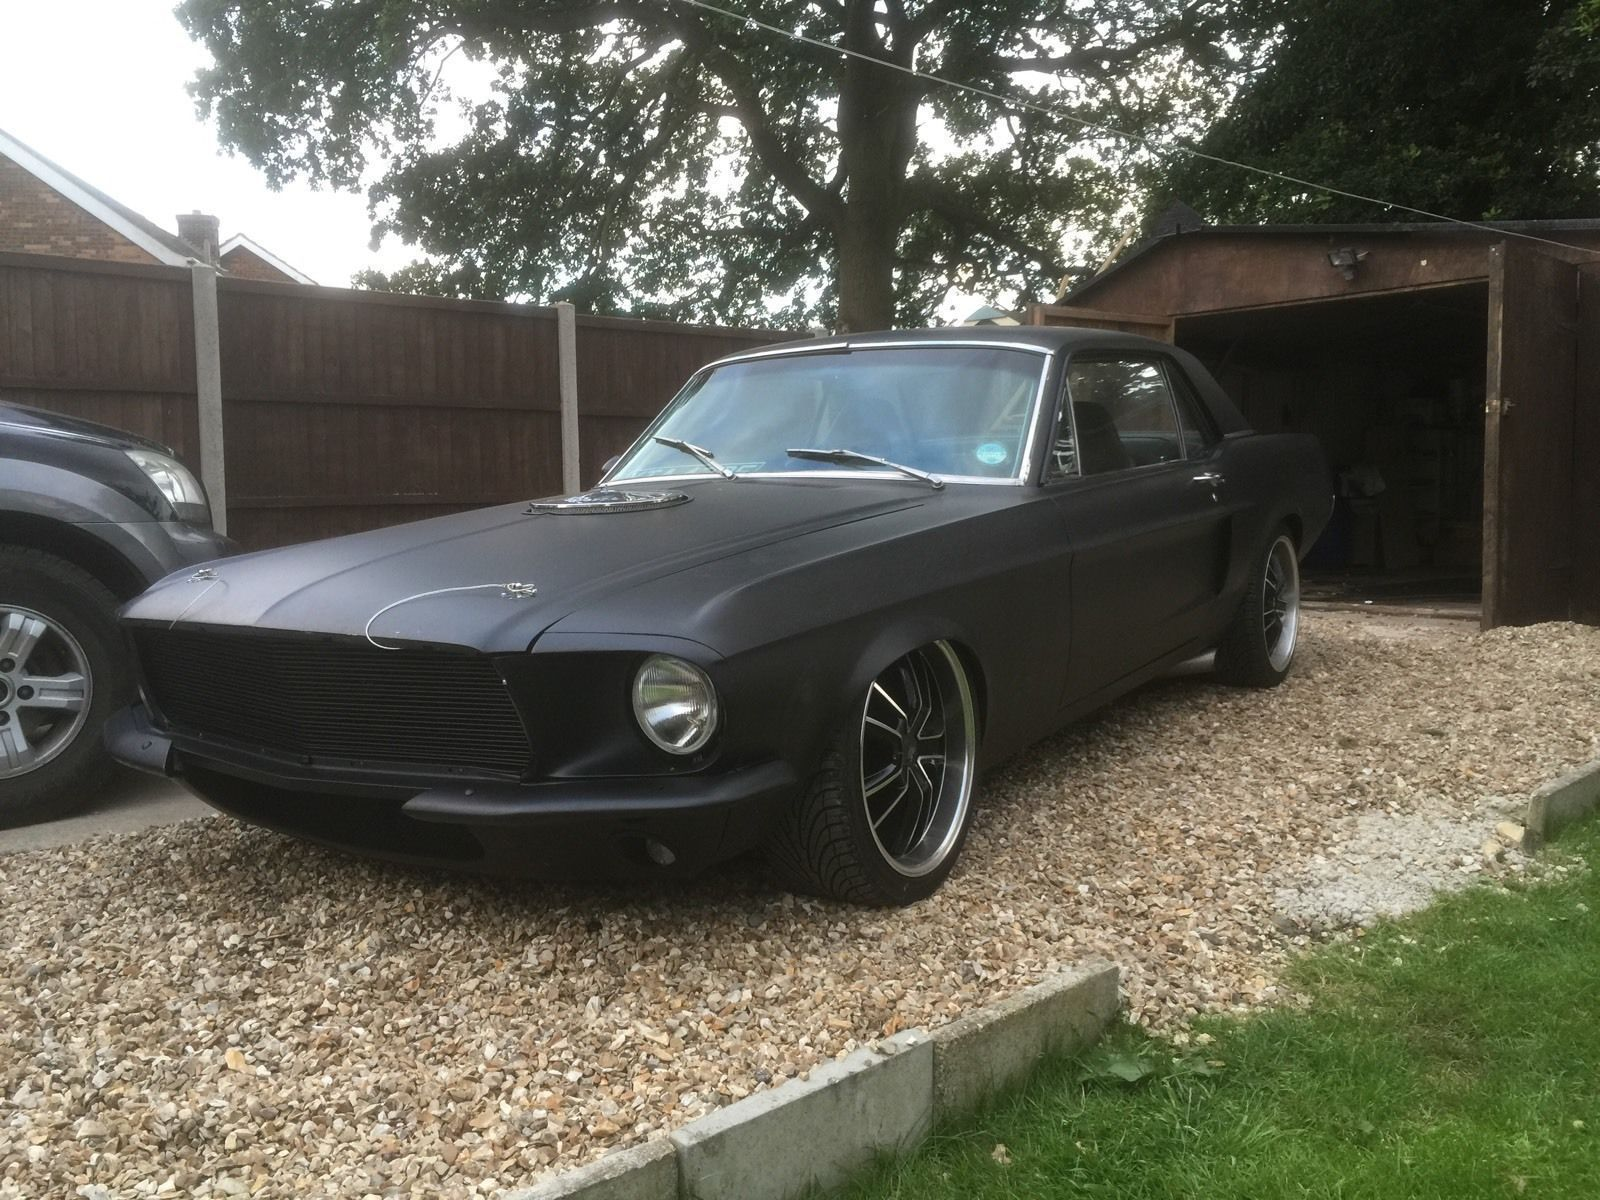 1967 Ford Mustang V8, Hot Rod, Rat Rod, Kit Car, American Muscle ...